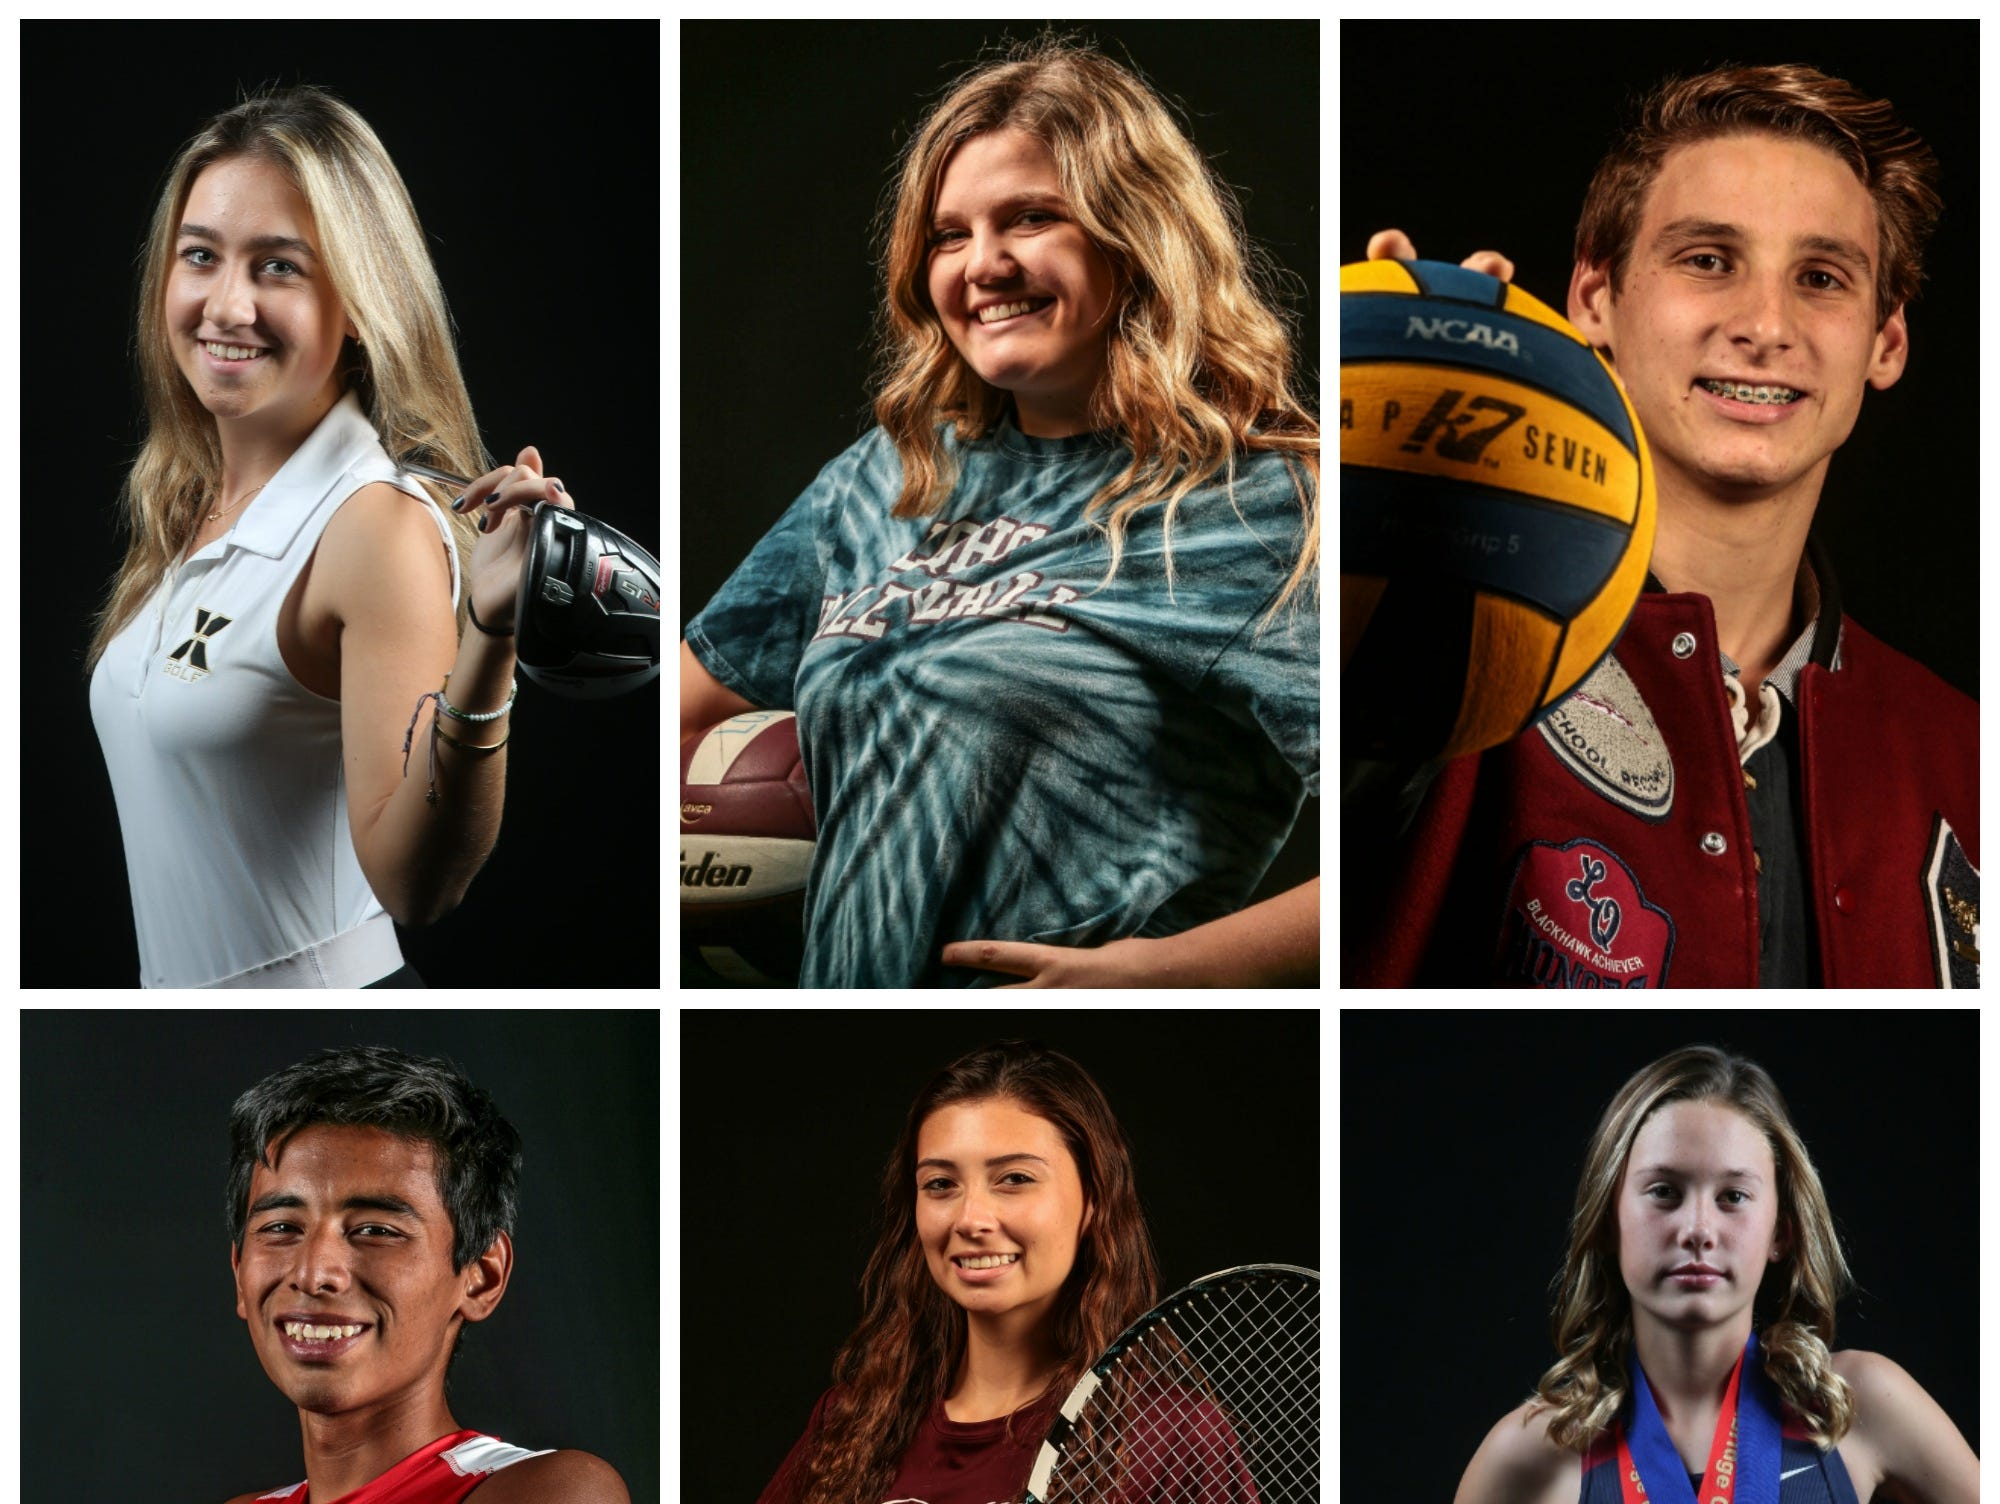 The top fall athletes of 2016.